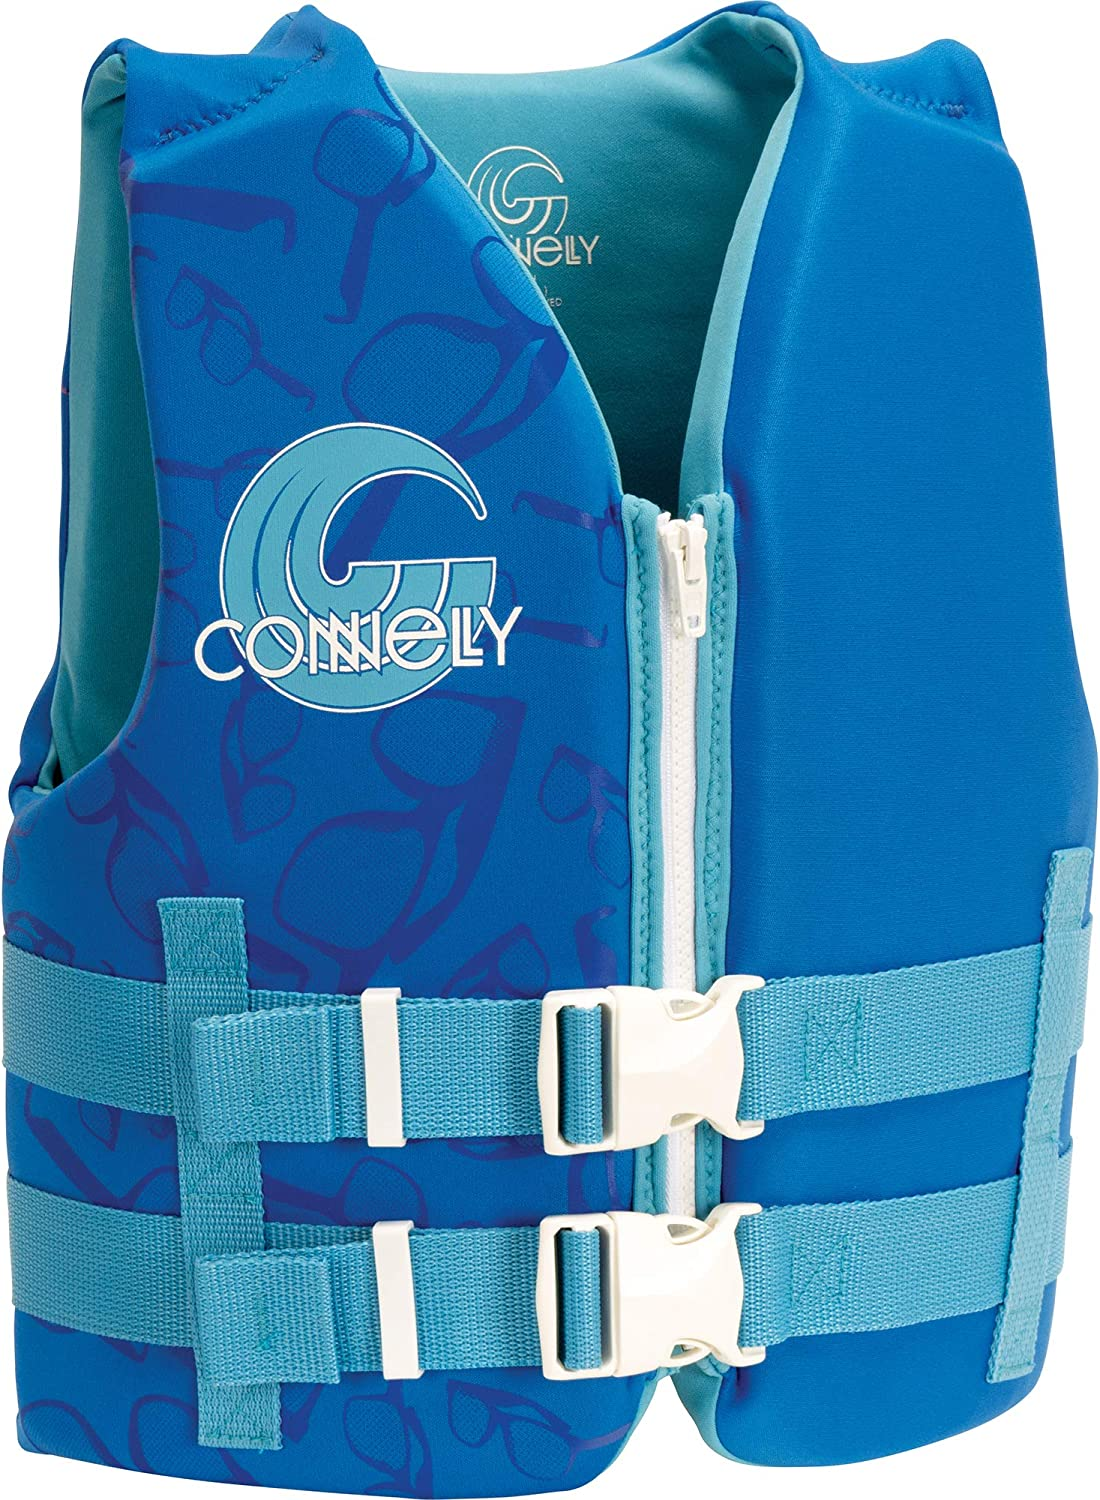 CWB Connelly Youth Boy's Promo Neo Vest - Coast Guard Approved, Blue